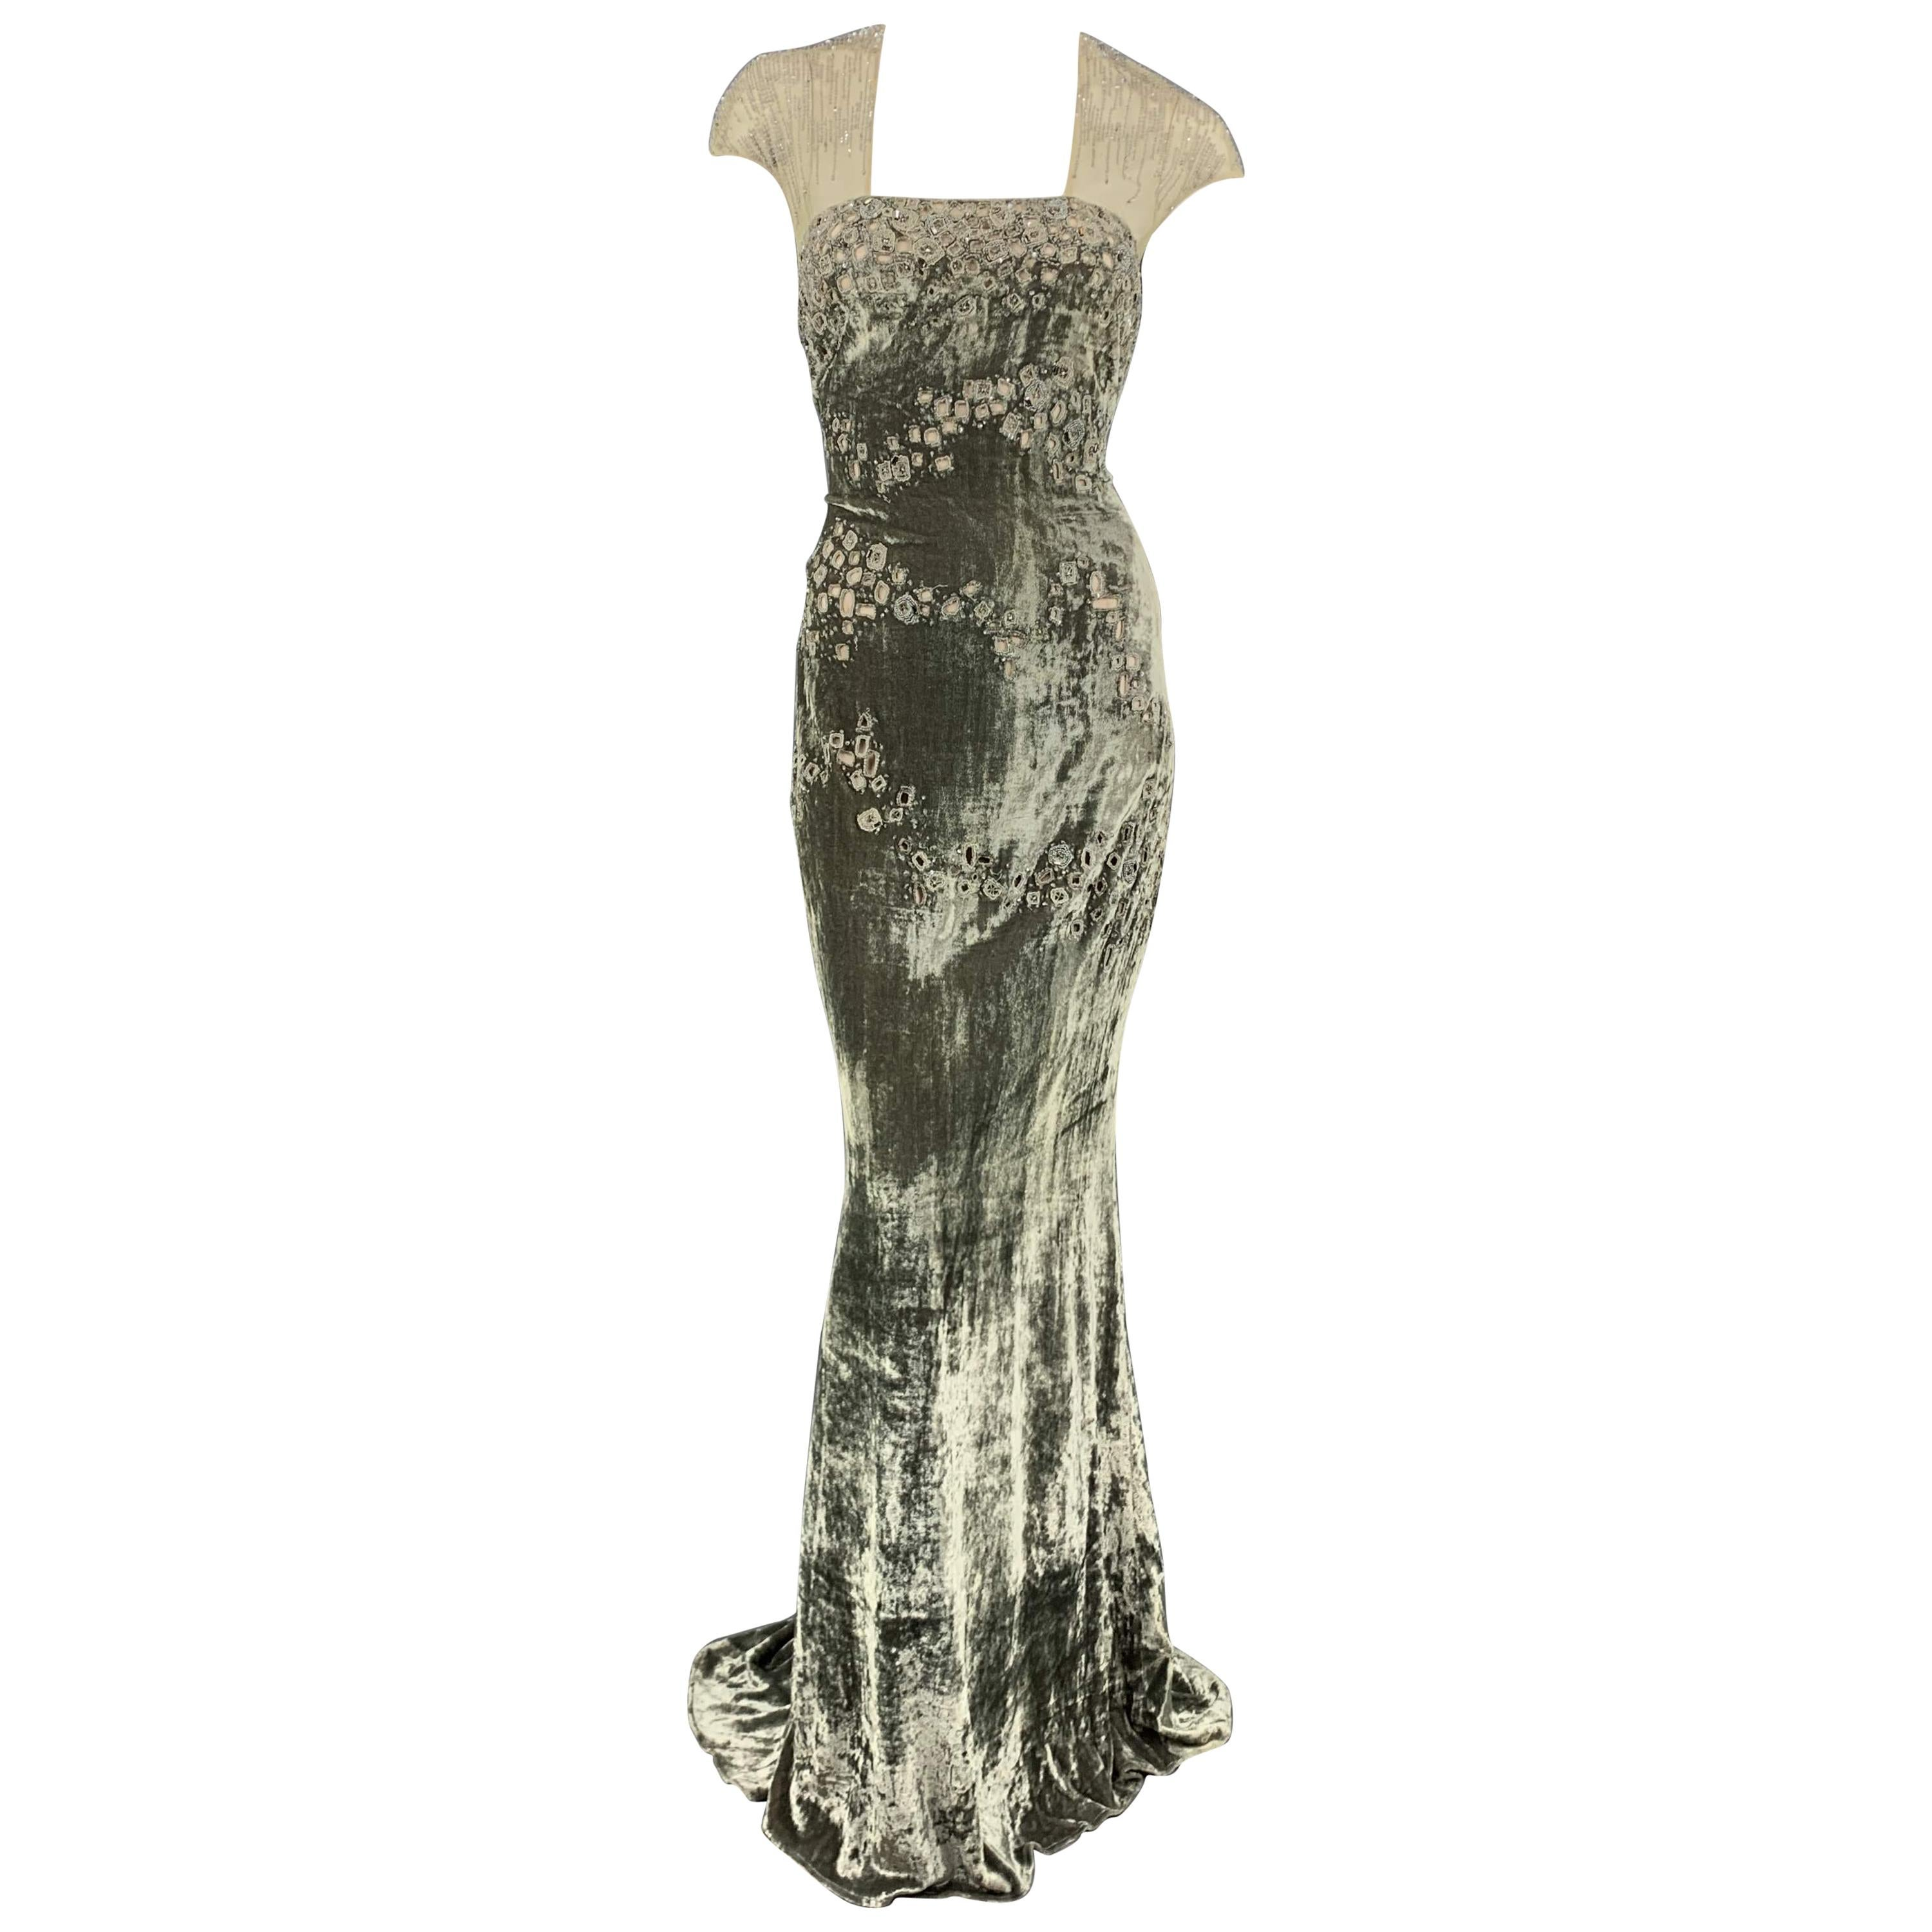 4673ed8af649e BADGLEY MISCHKA Size 10 Moss Green Beaded Tulle Top Evening Gown at 1stdibs